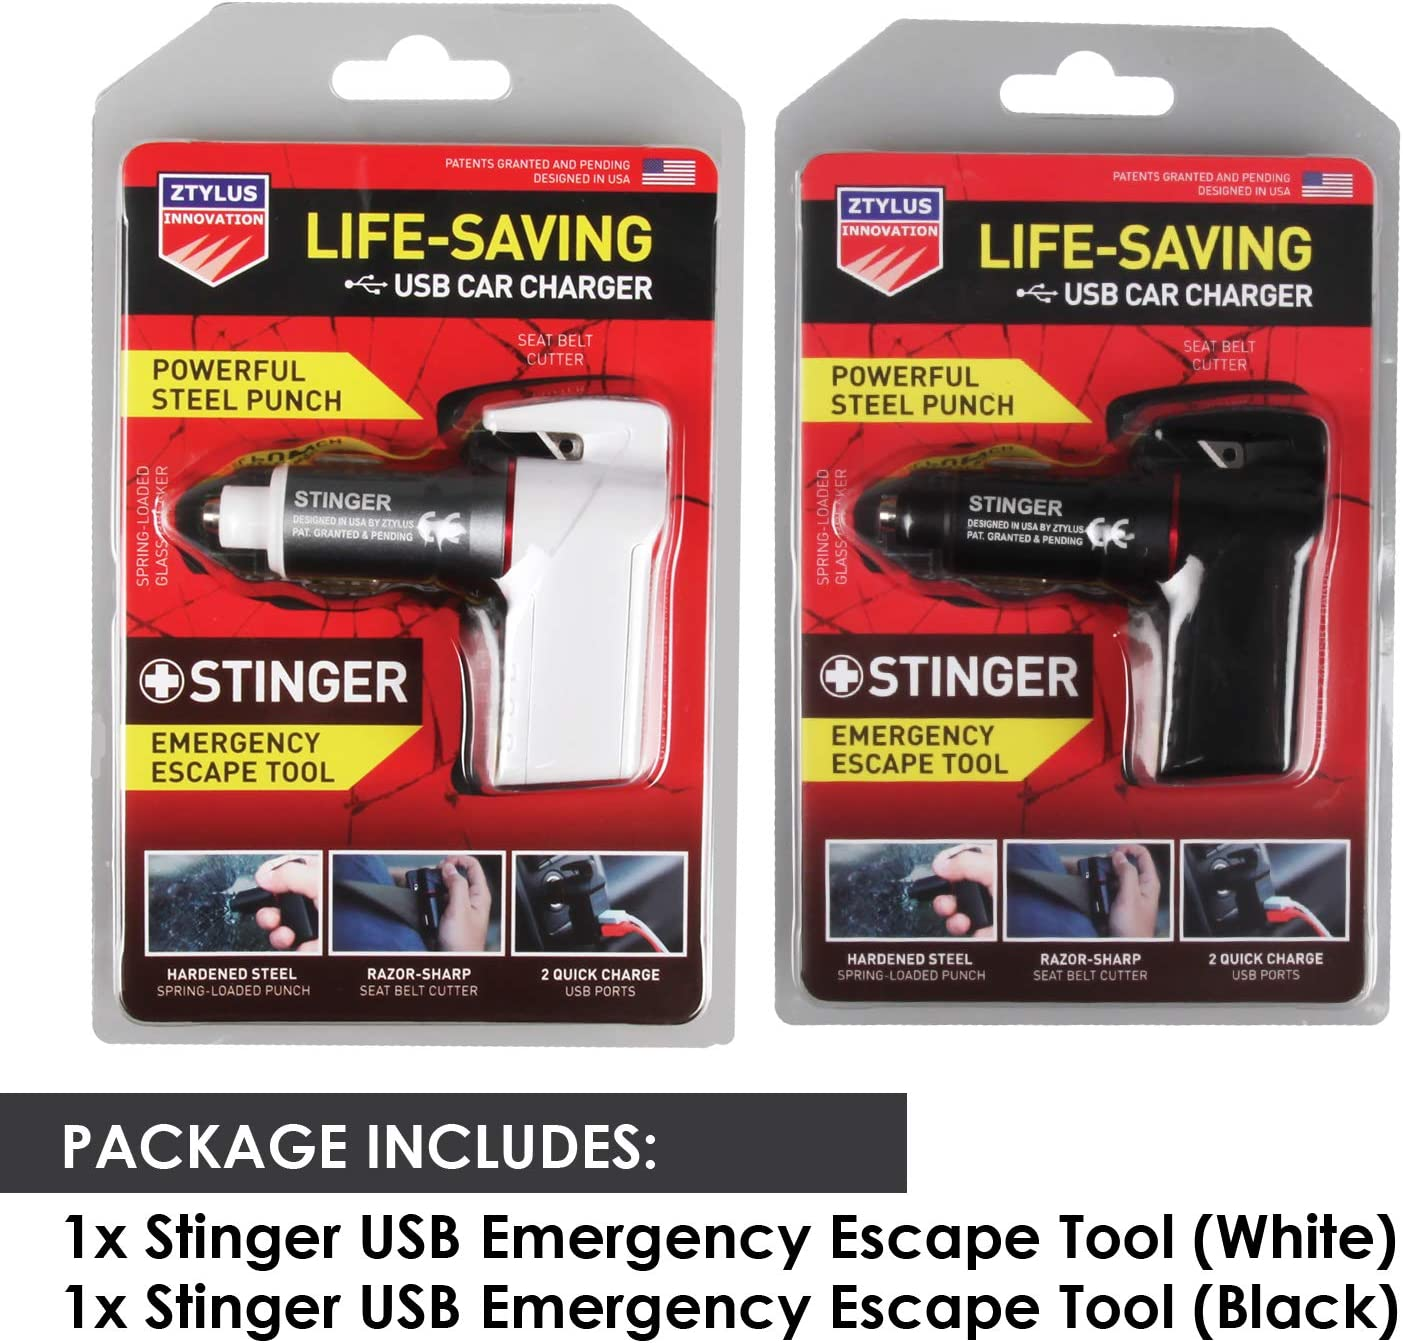 Dual USB Ports Max 2.4A 2 pcs Black Combo Seatbelt Cutter Ztylus Stinger Car Safety Emergency Escape Tool: Life Saving Rescue USB Phone Charger Adapter Spring Loaded Window Breaker Glass Hammer